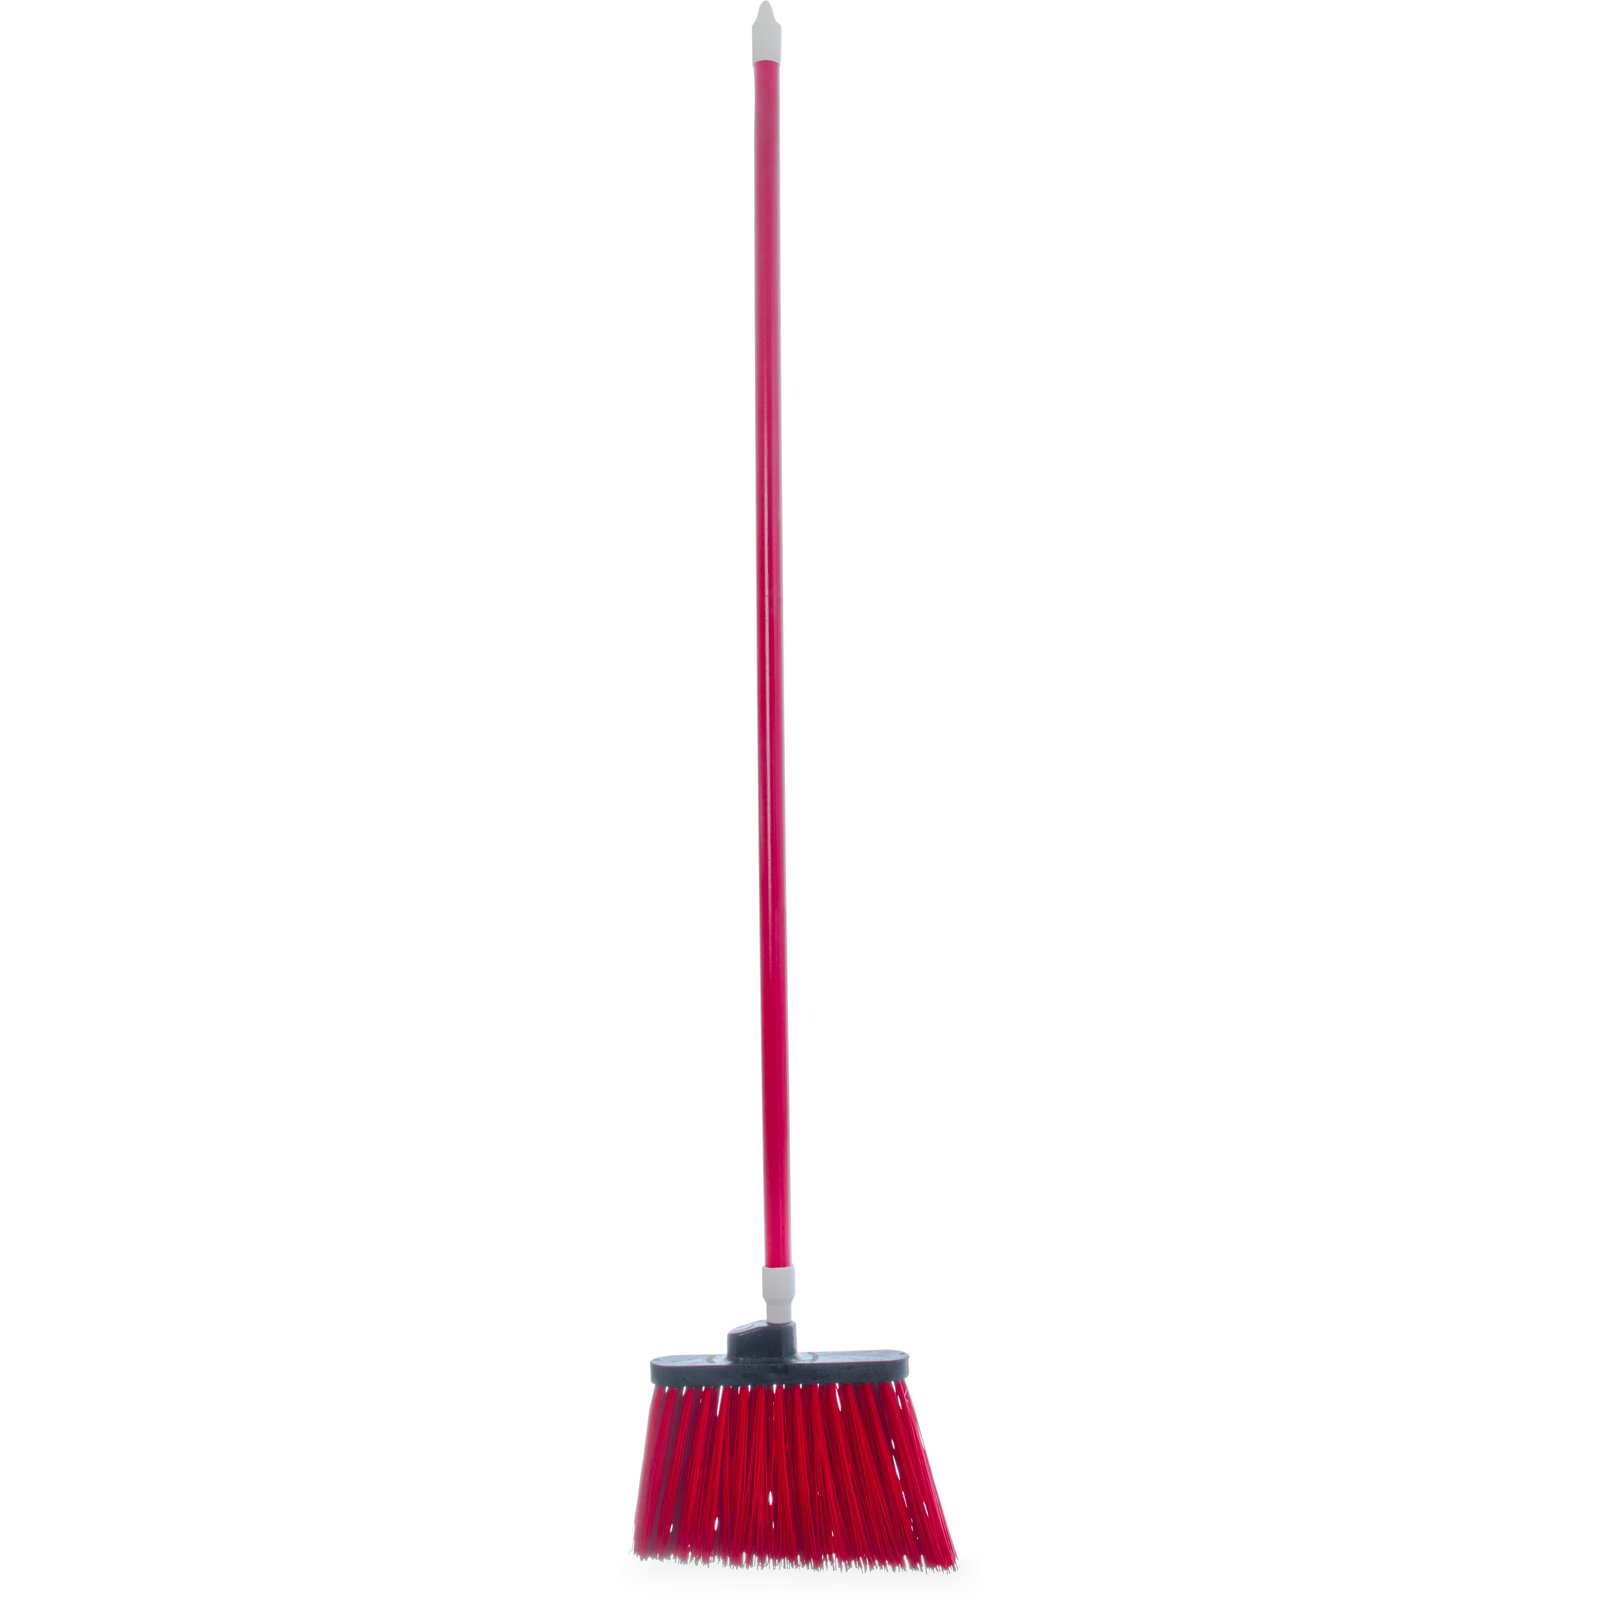 "BROOM 54"" UNFLAGGED ANGLE W/ POLYPROPYLENE BRISTLES RED"